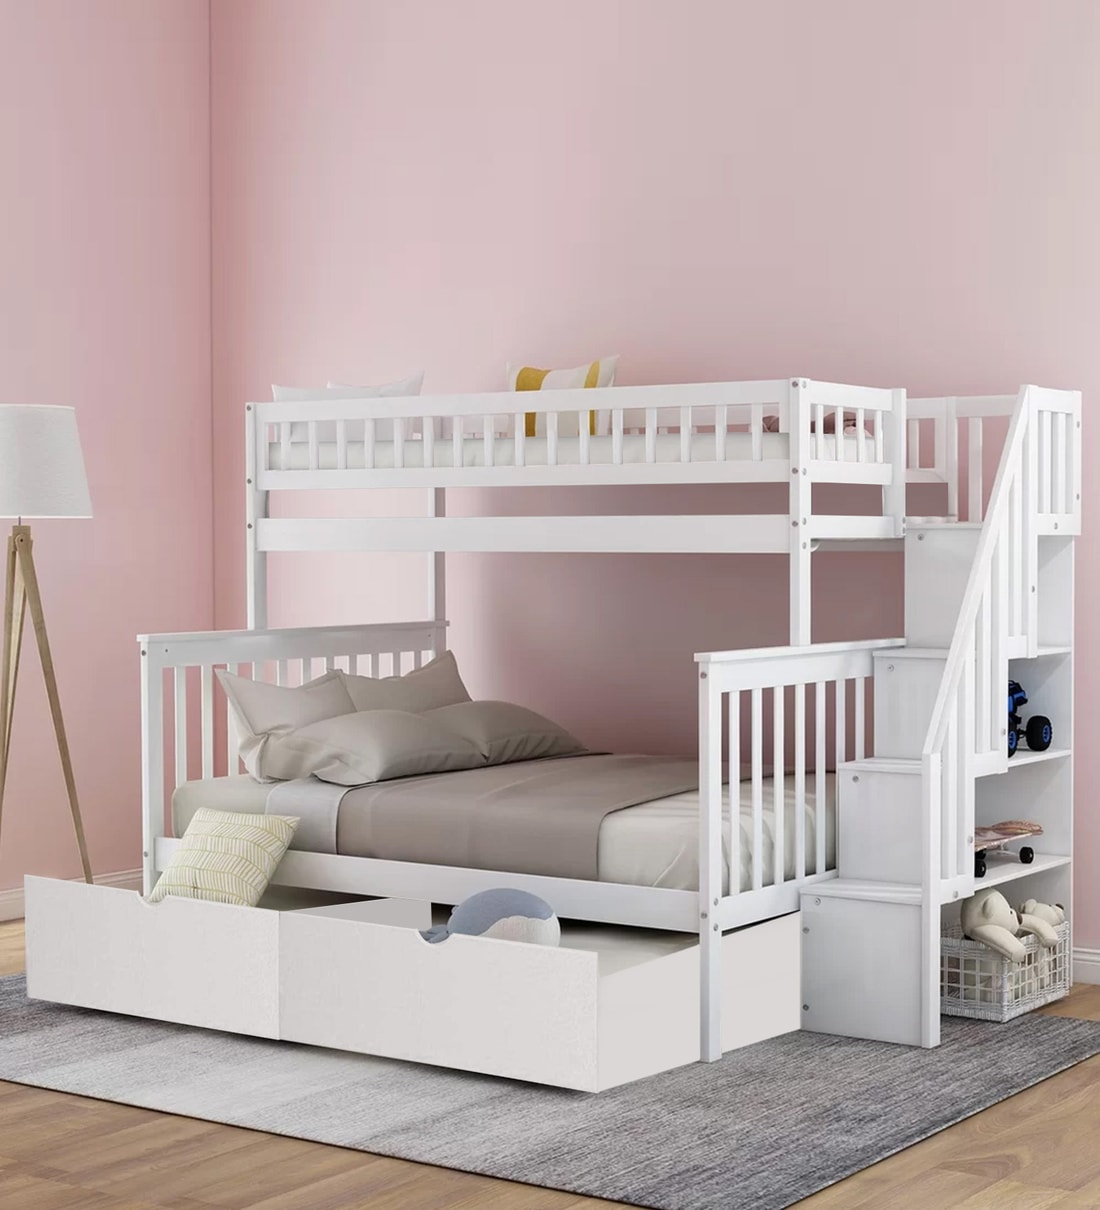 Buy Farmhouse Pine Wood Bunk Bed With Trundle Storage In White Casacraft By Pepperfry Online Trundle Bunk Beds Bunk Beds Kids Furniture Pepperfry Product